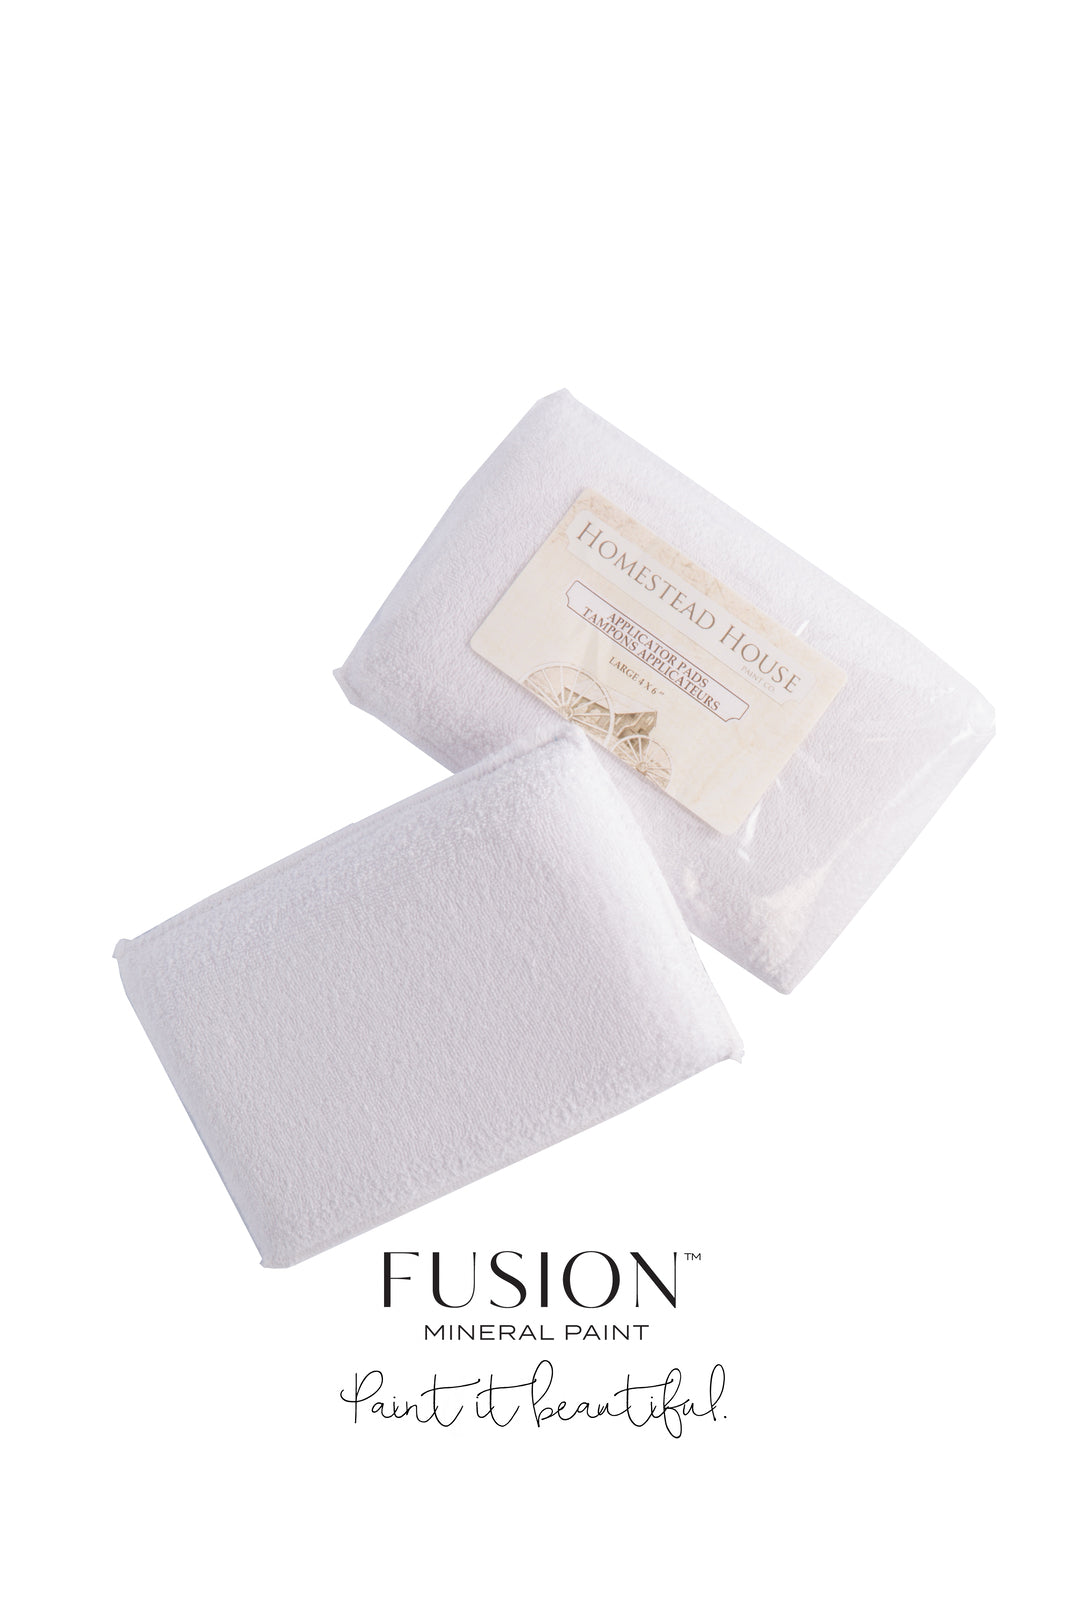 Fusion applicator pad x2